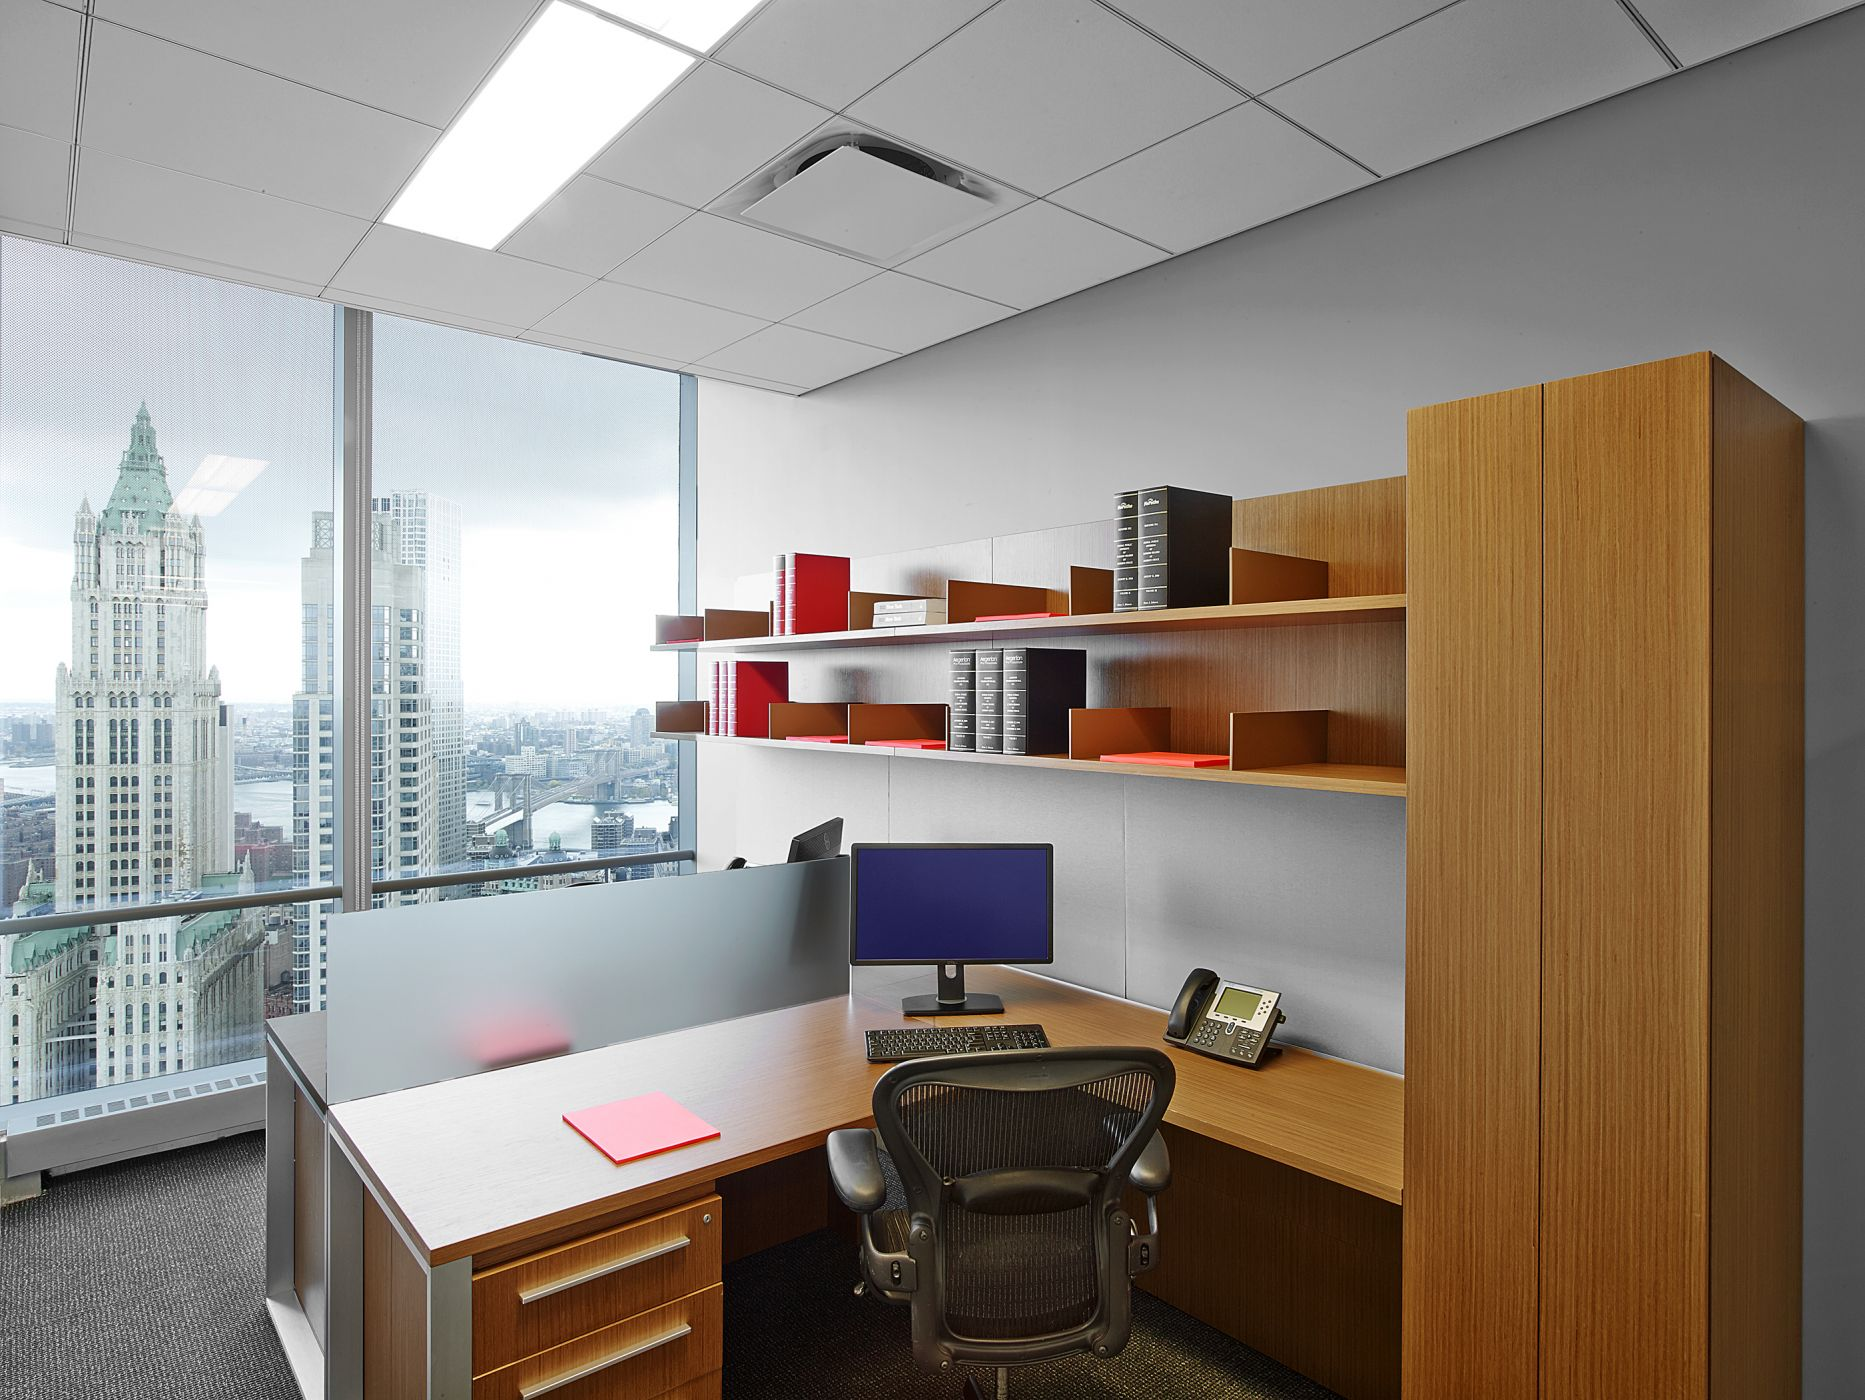 A double associate configuration includes an acrylic panel to divide shared space.